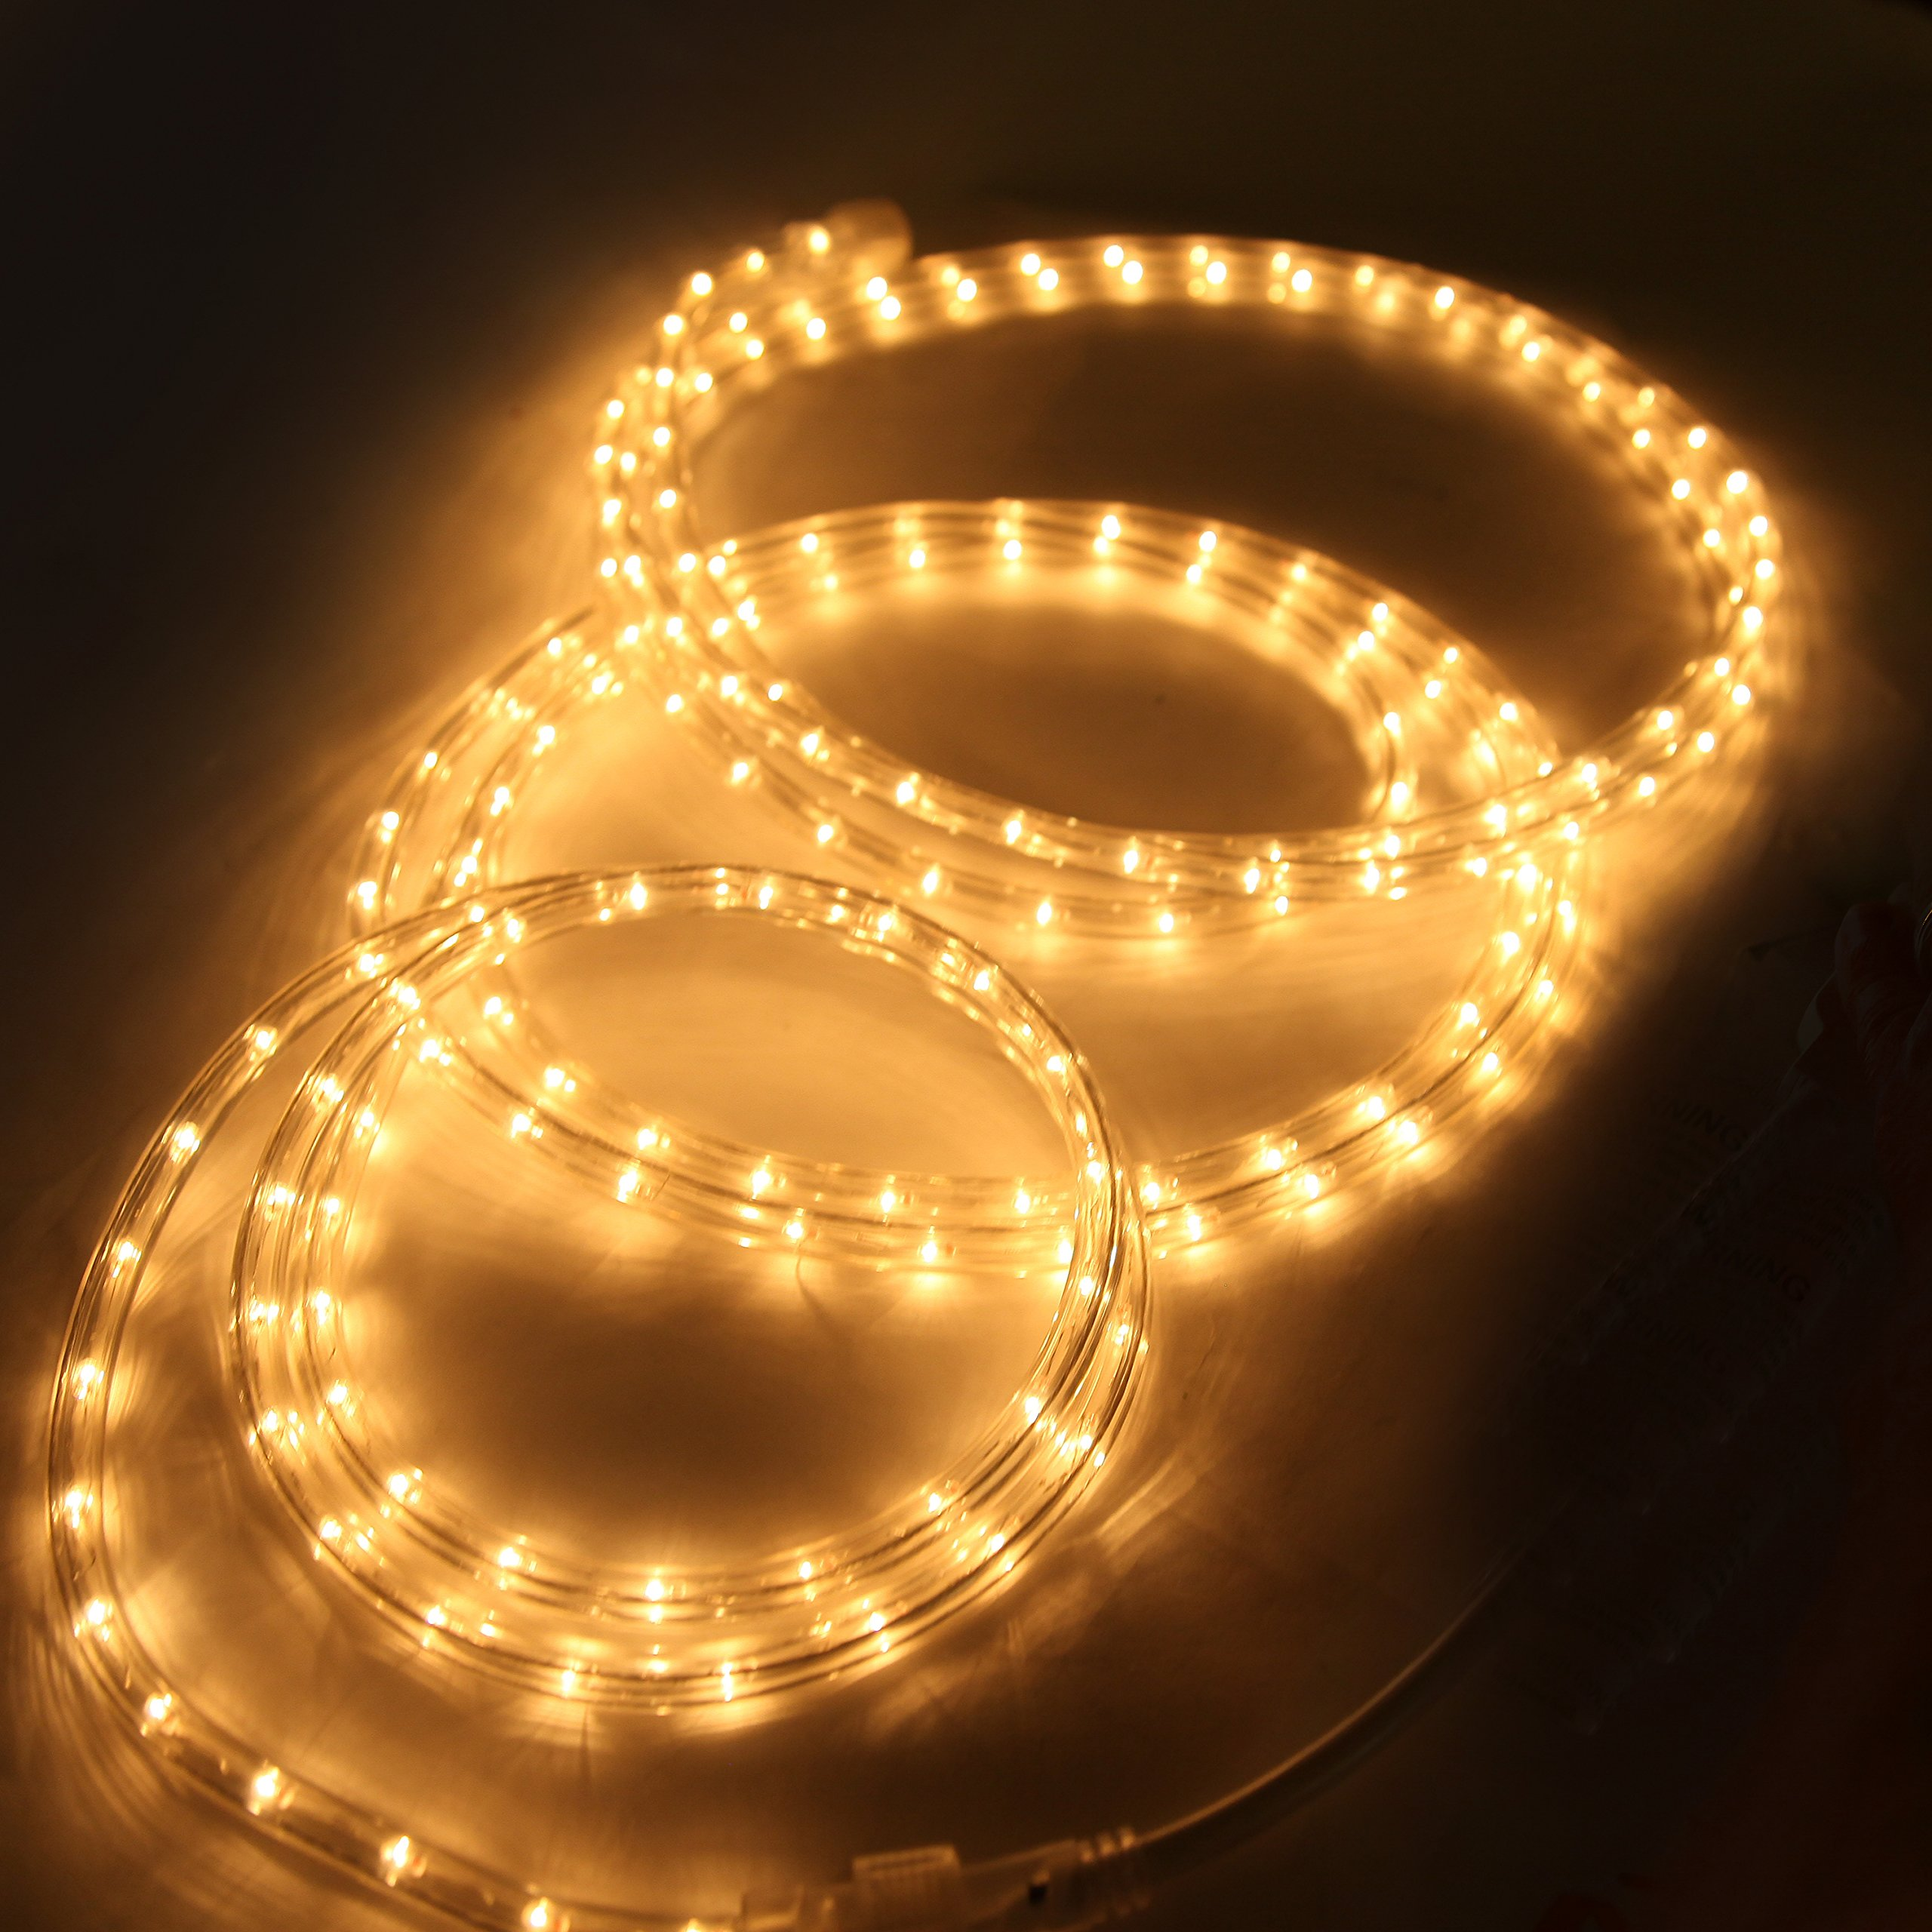 rgb hollinlighting led wire lighting rope flat changing lr series light hl